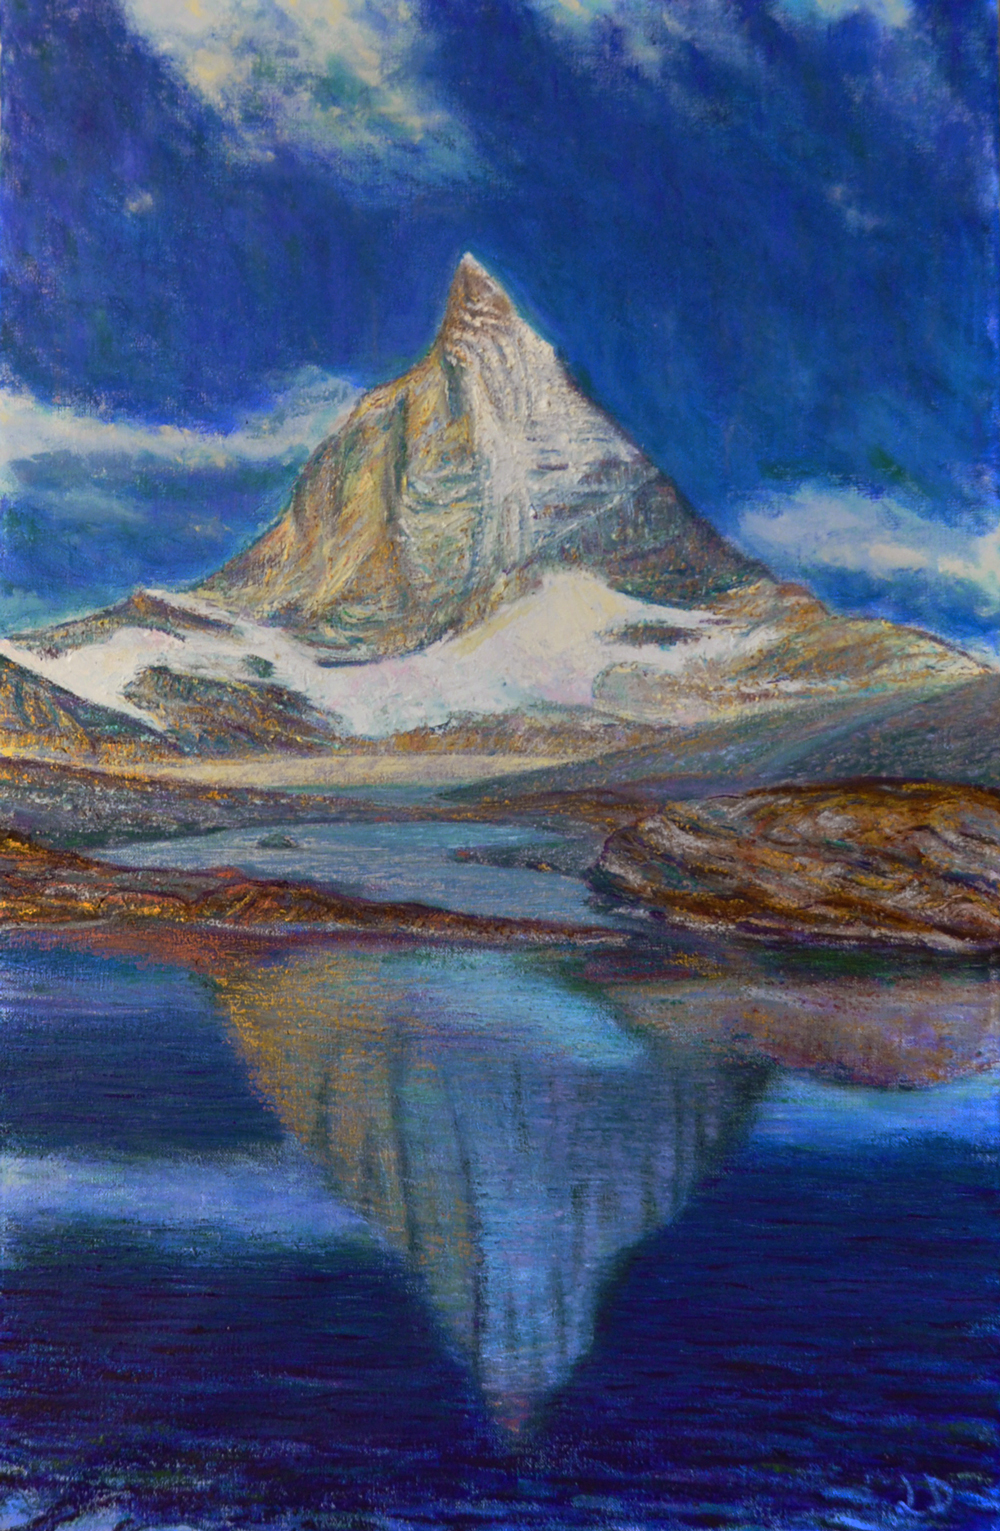 Matterhorn, from Trockener Steg. Oil on canvas, 100x60, 2018